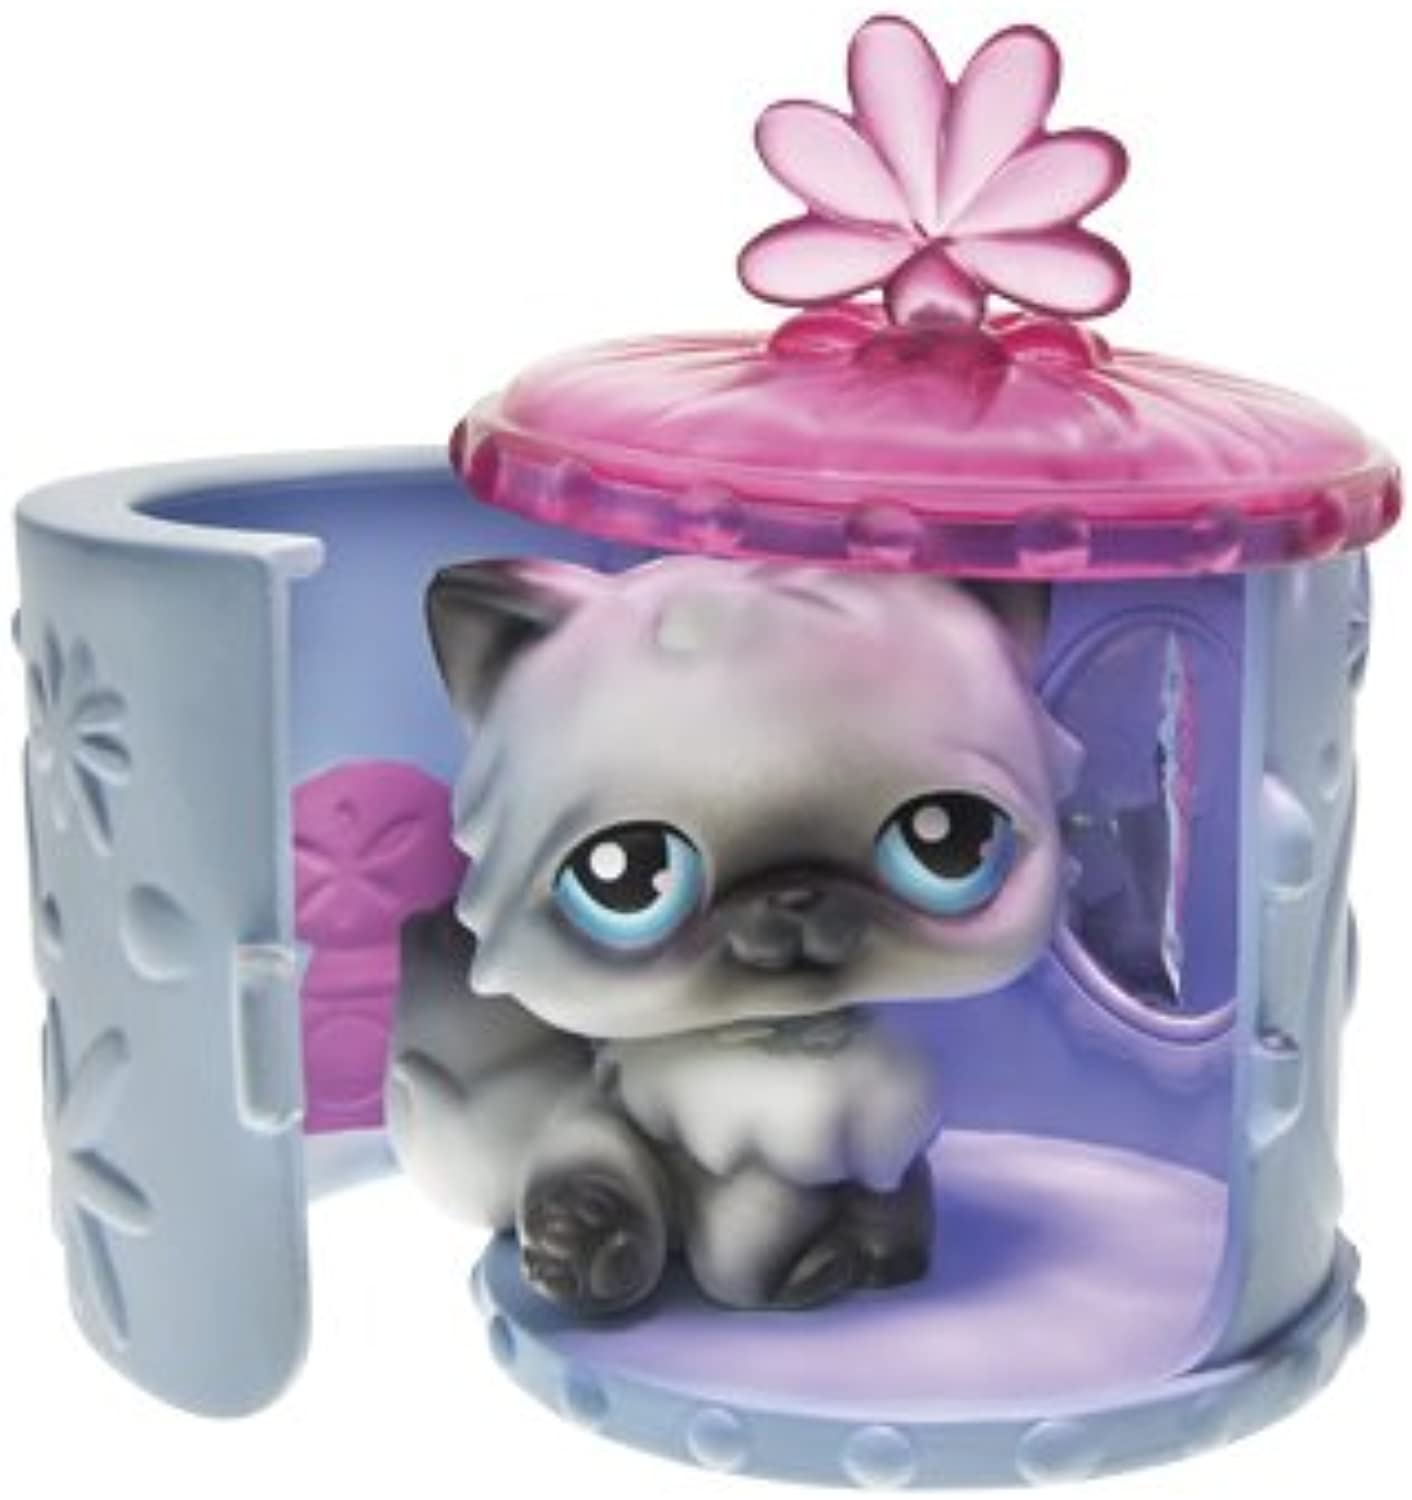 Littlest Pet Shop  Portable Pets  Siamese Kitty with Tiara, Carrying Case and Vanity Mirror